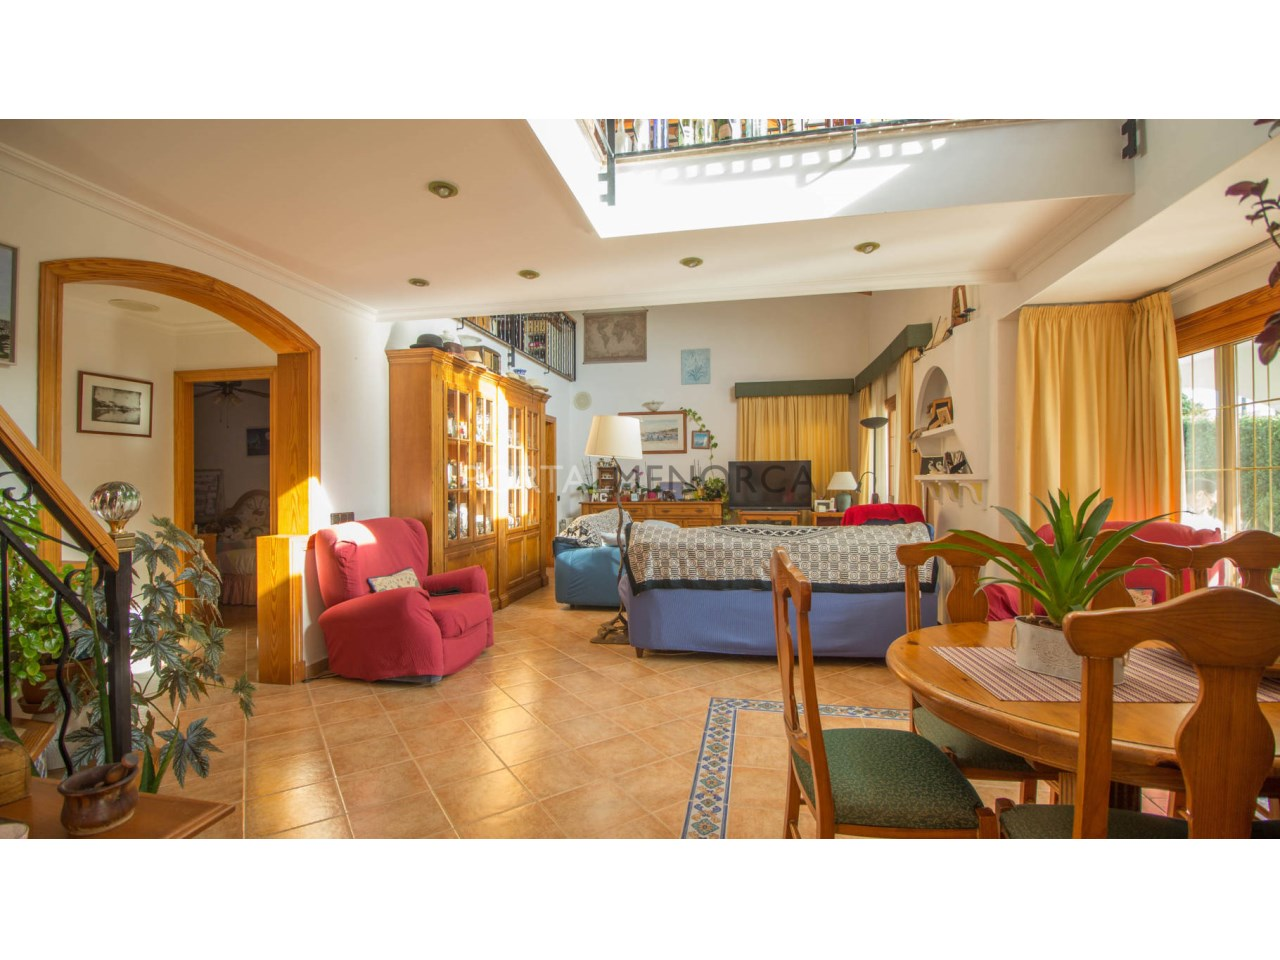 House by the sea for sale in Menorca